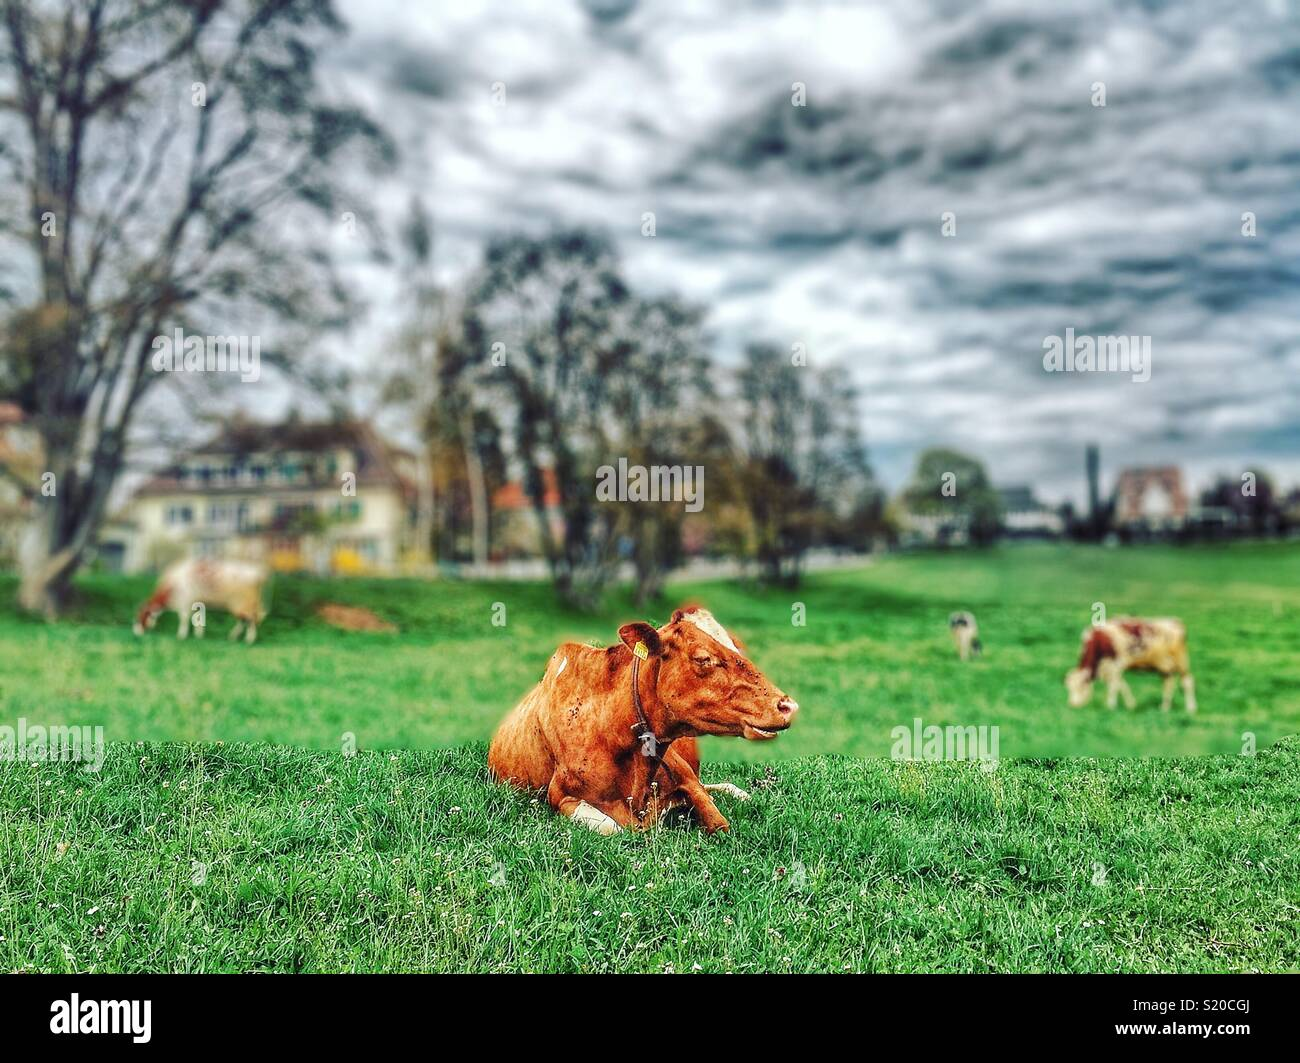 Cows in a field - Stock Image